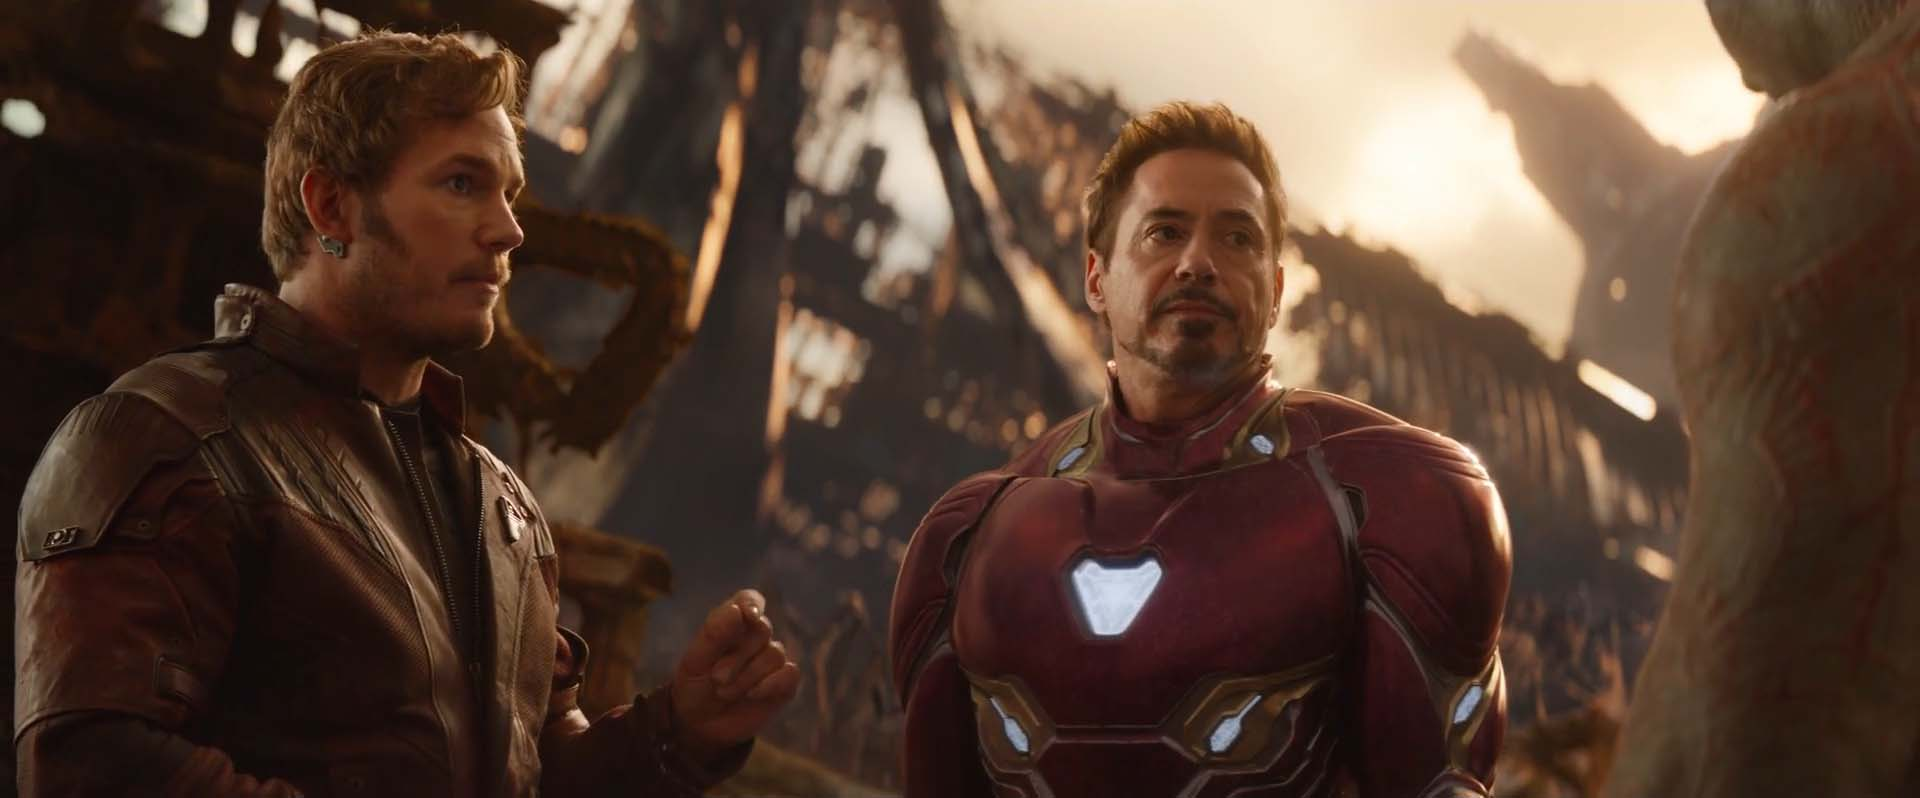 Avengers: Infinity War is the No. 1 title at the 2018 summer box office.